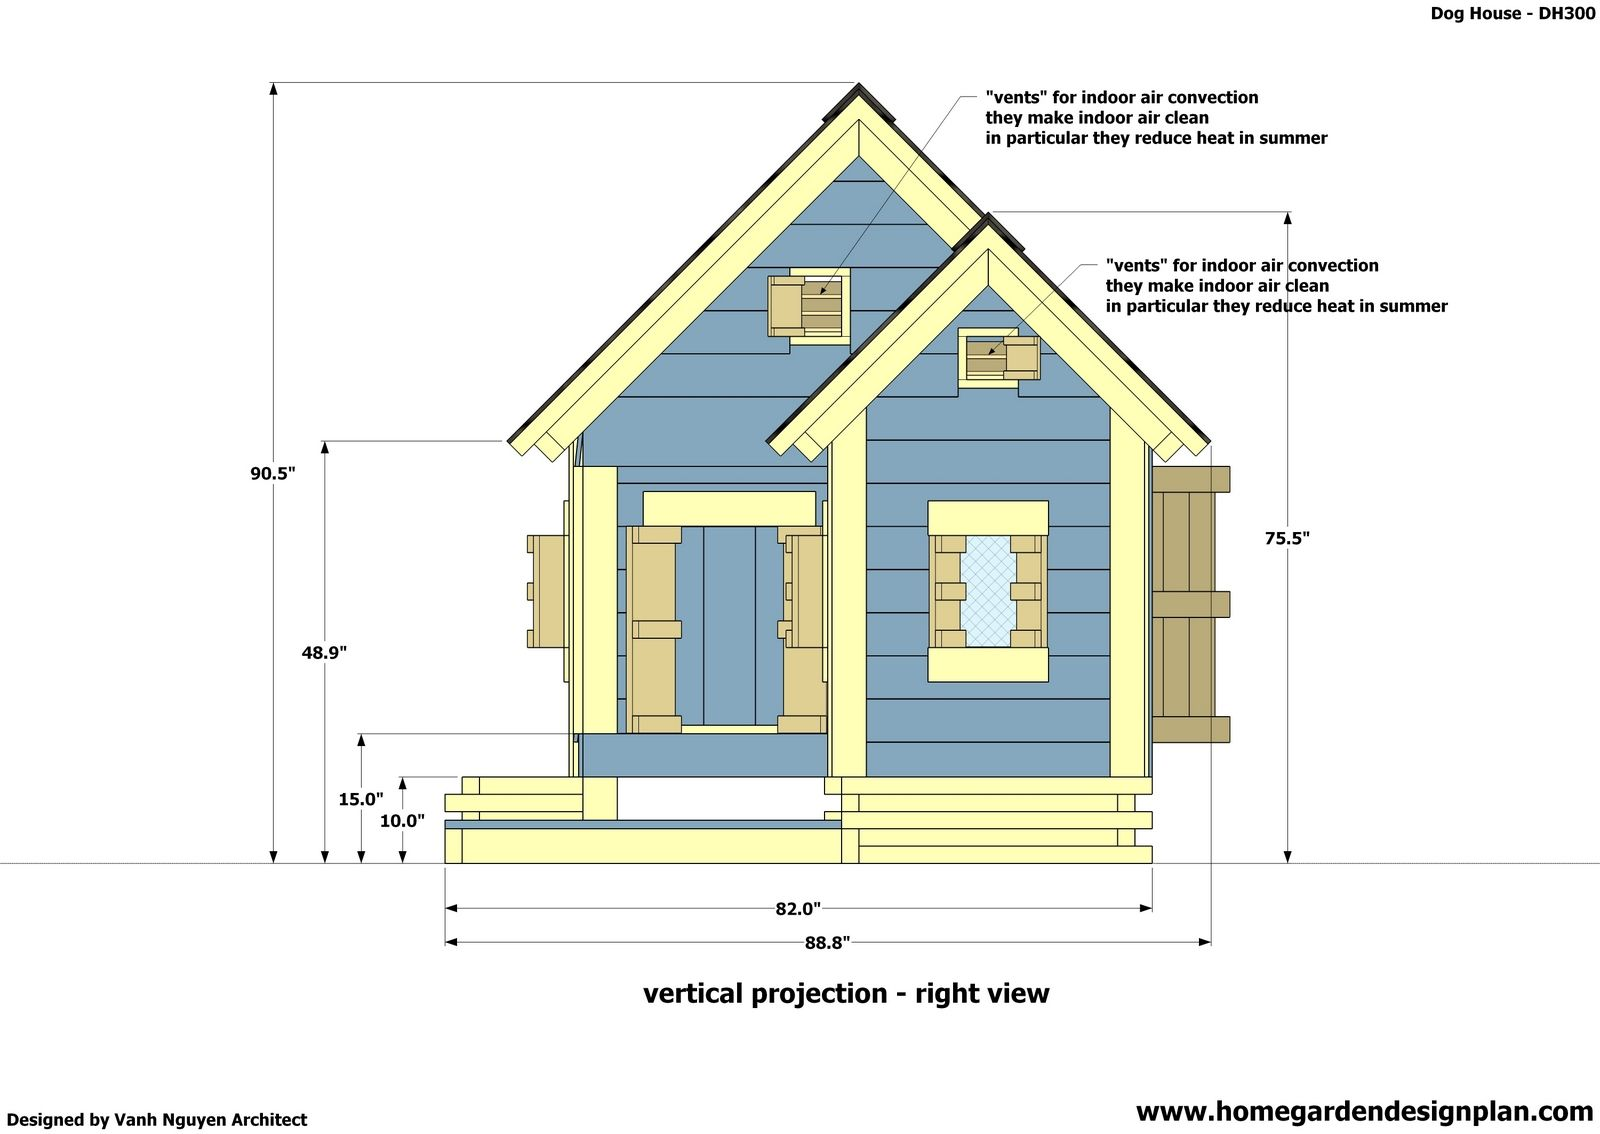 2 7 Insulated Dog House Plan Free Insulated Dog House Plan Construction Dog House Design Dog House Plans Home Design Software Free Home Design Software